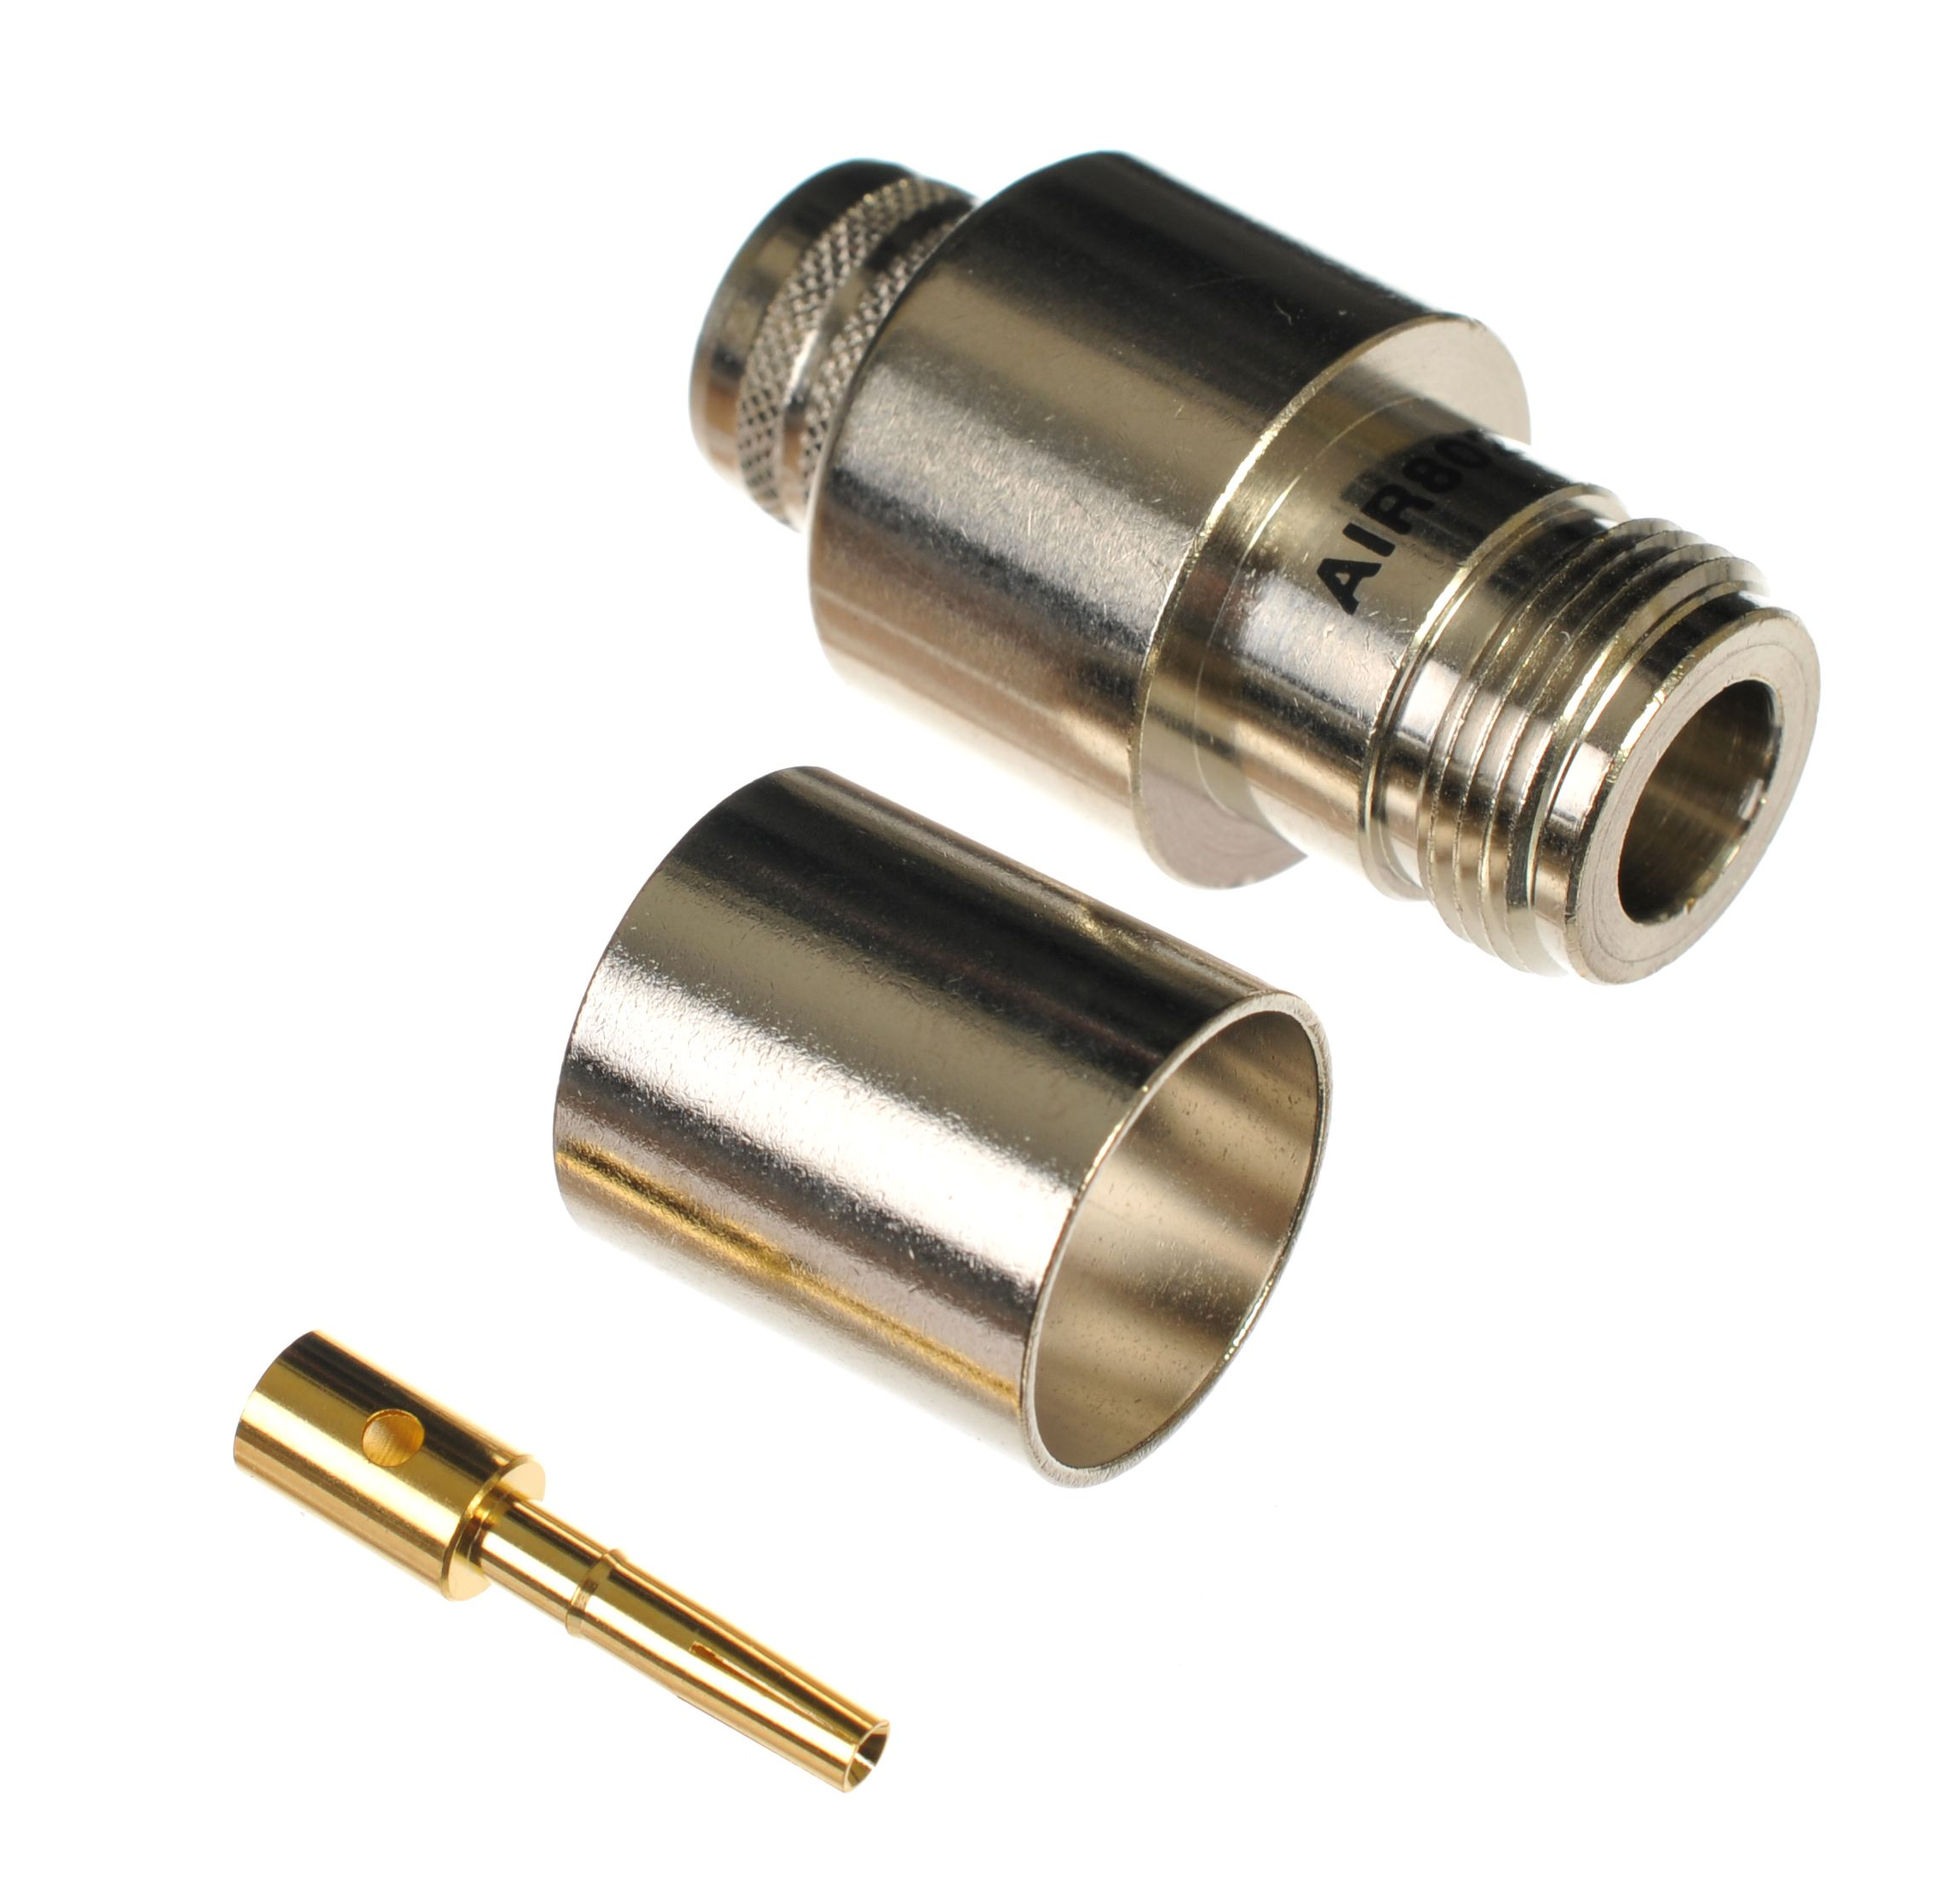 N Jack Or Female Crimp Connector For Air802 Ca600 Times Microwave Lmr600 Coaxial Cables